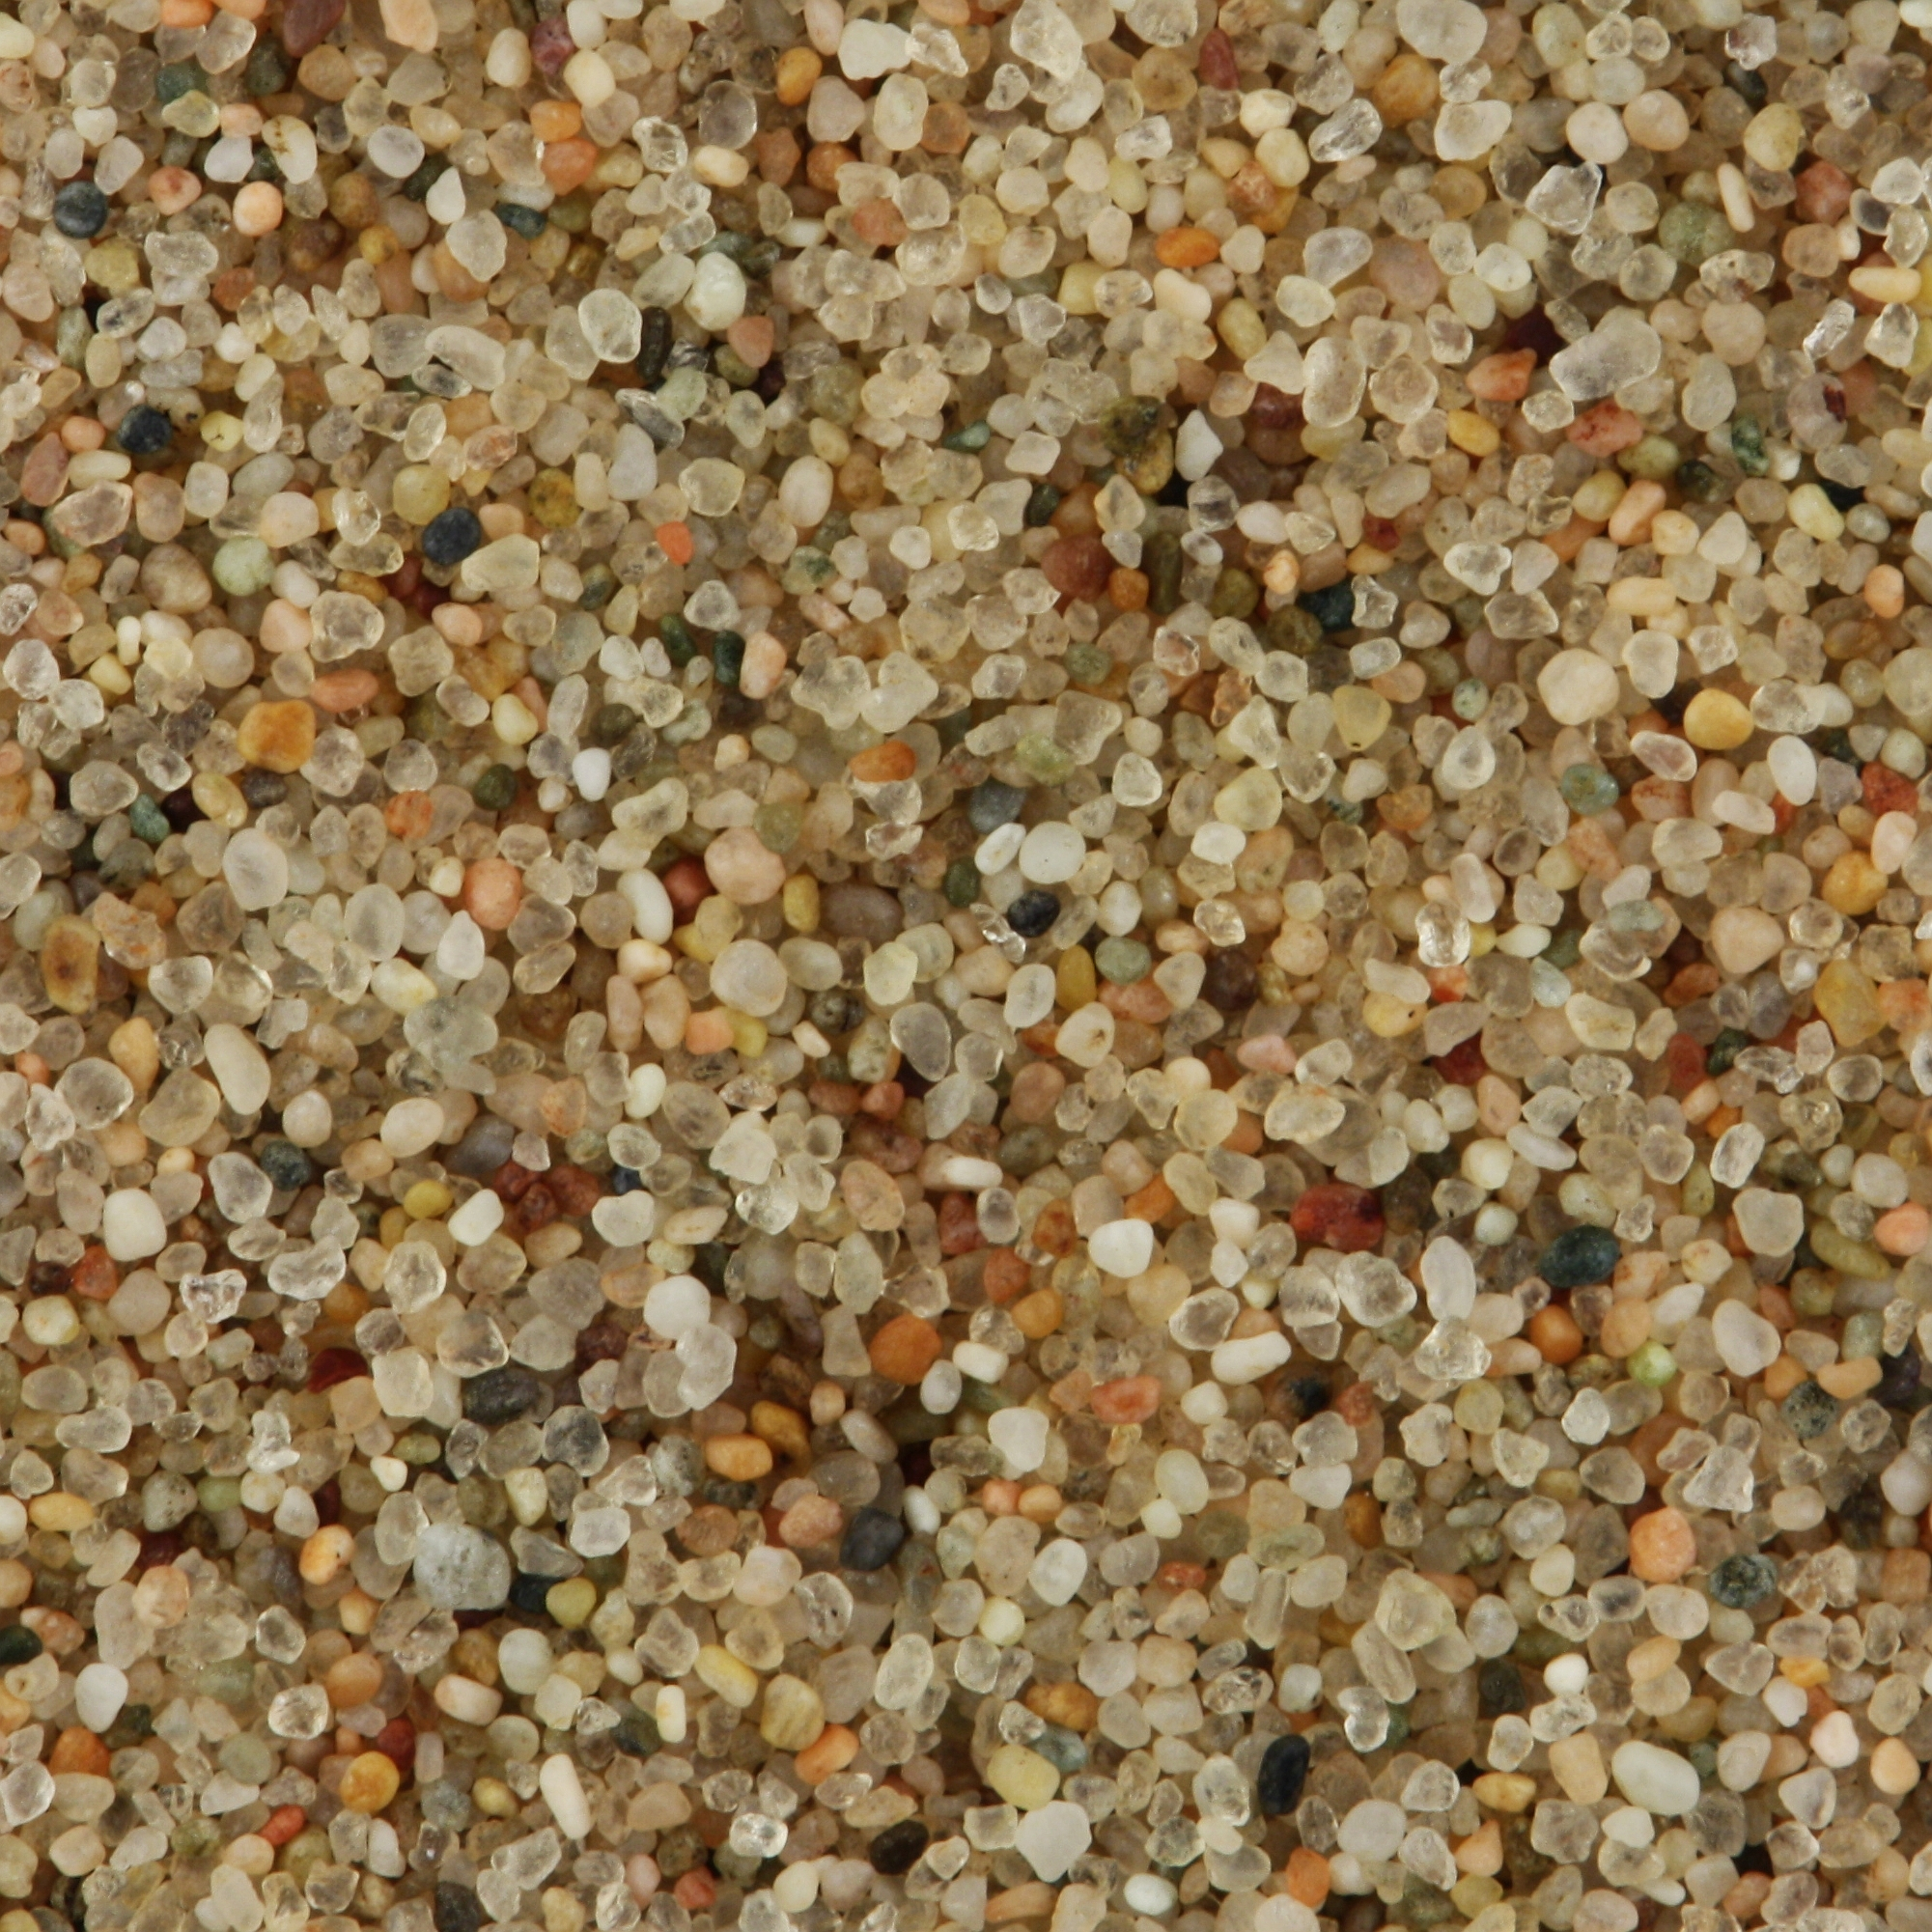 Close-up  1 1 cm  of sand from Sand